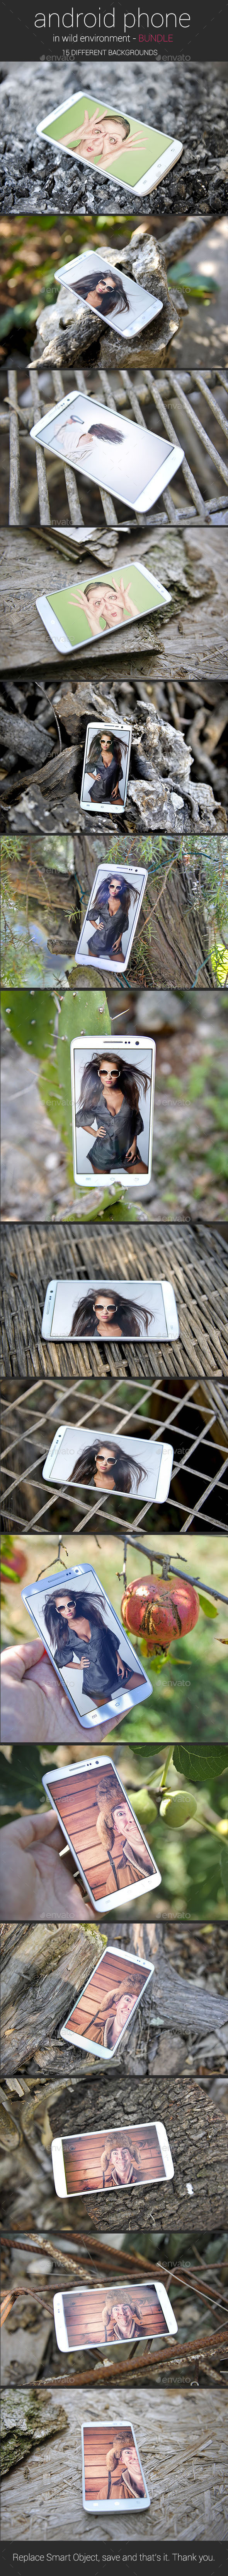 Android Phone in Wild Environment Bundle - Mobile Displays